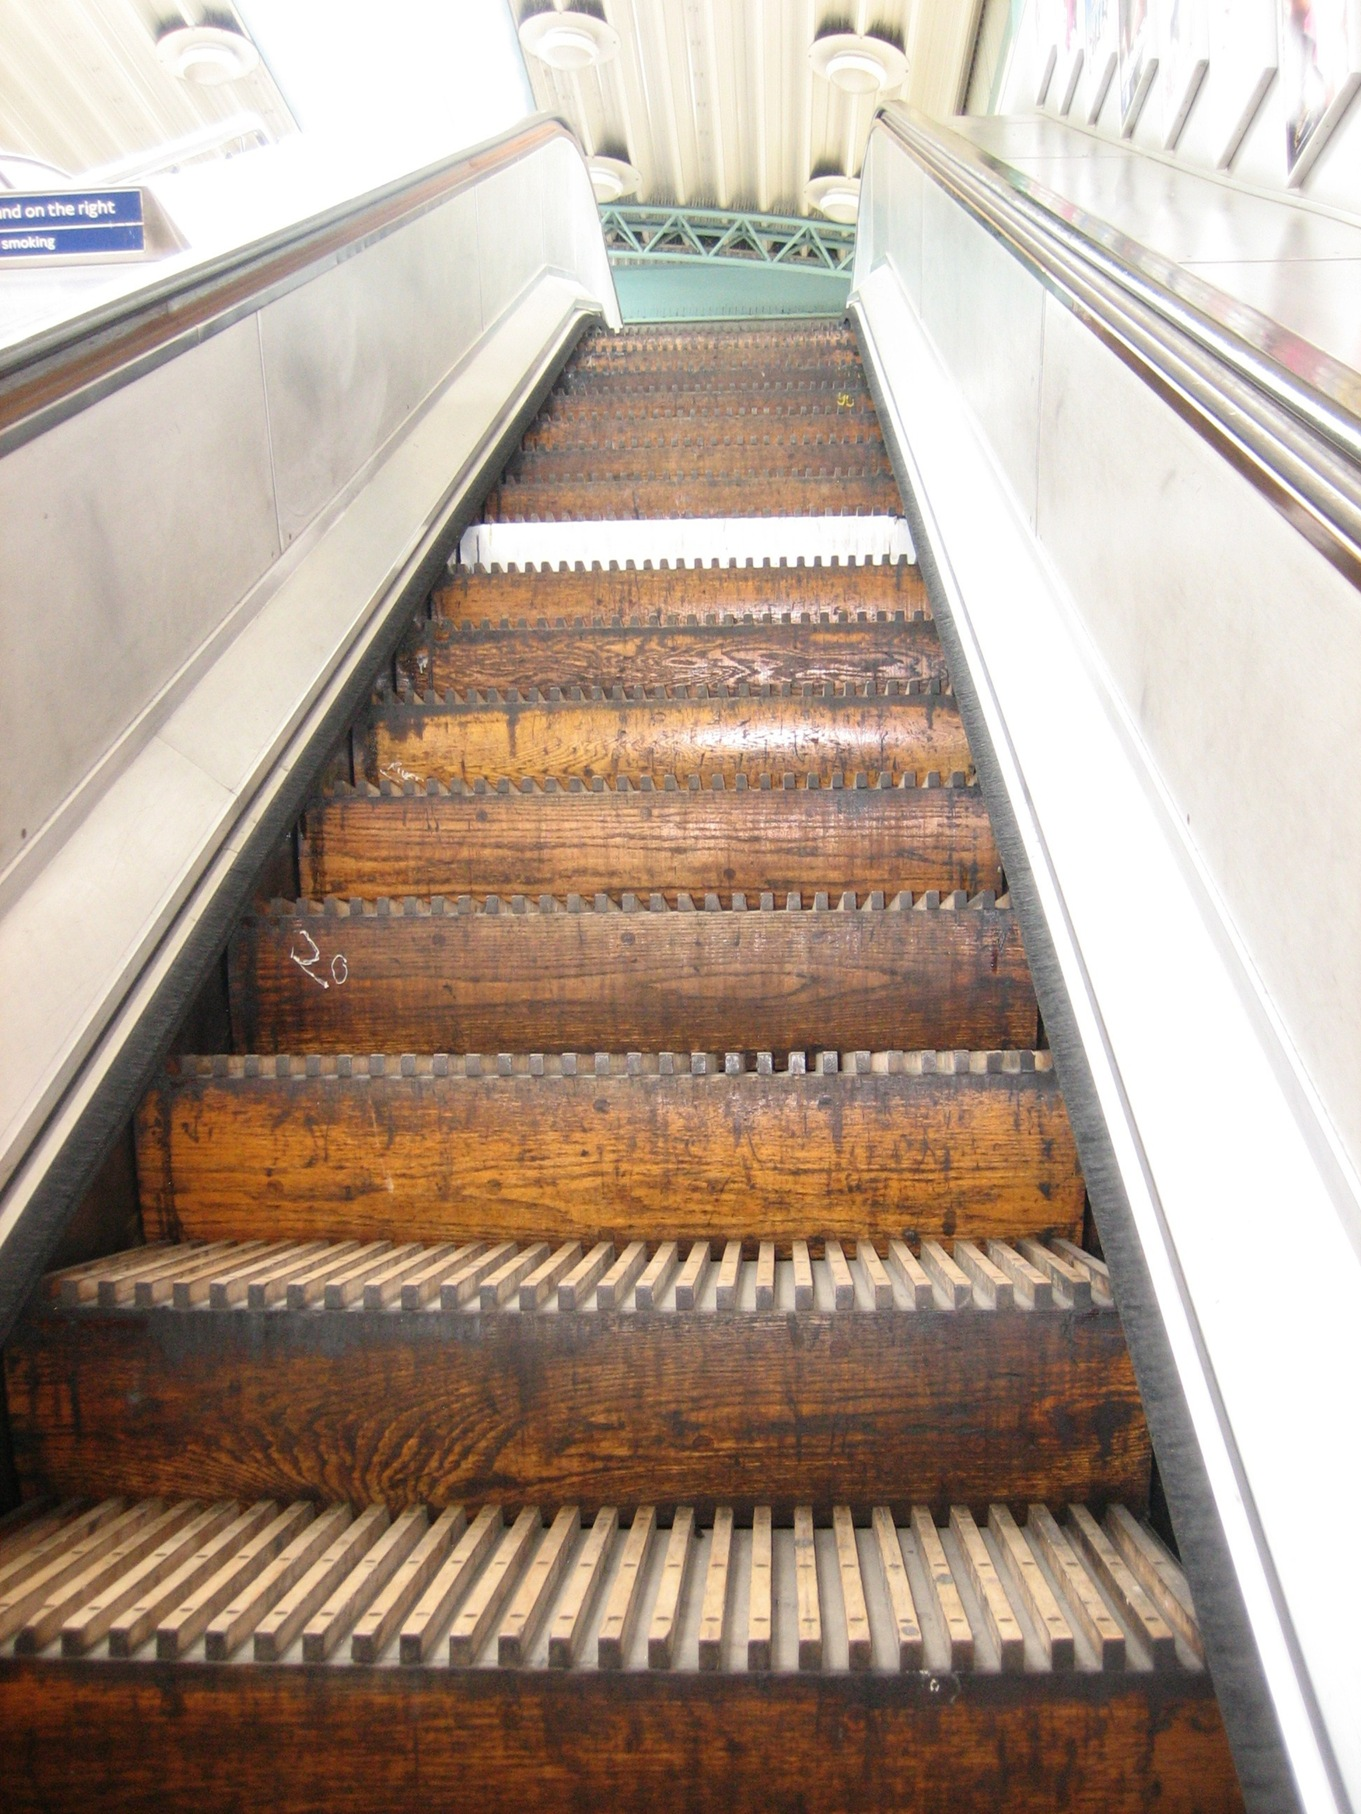 Goodbye to the last remaining wooden escalator